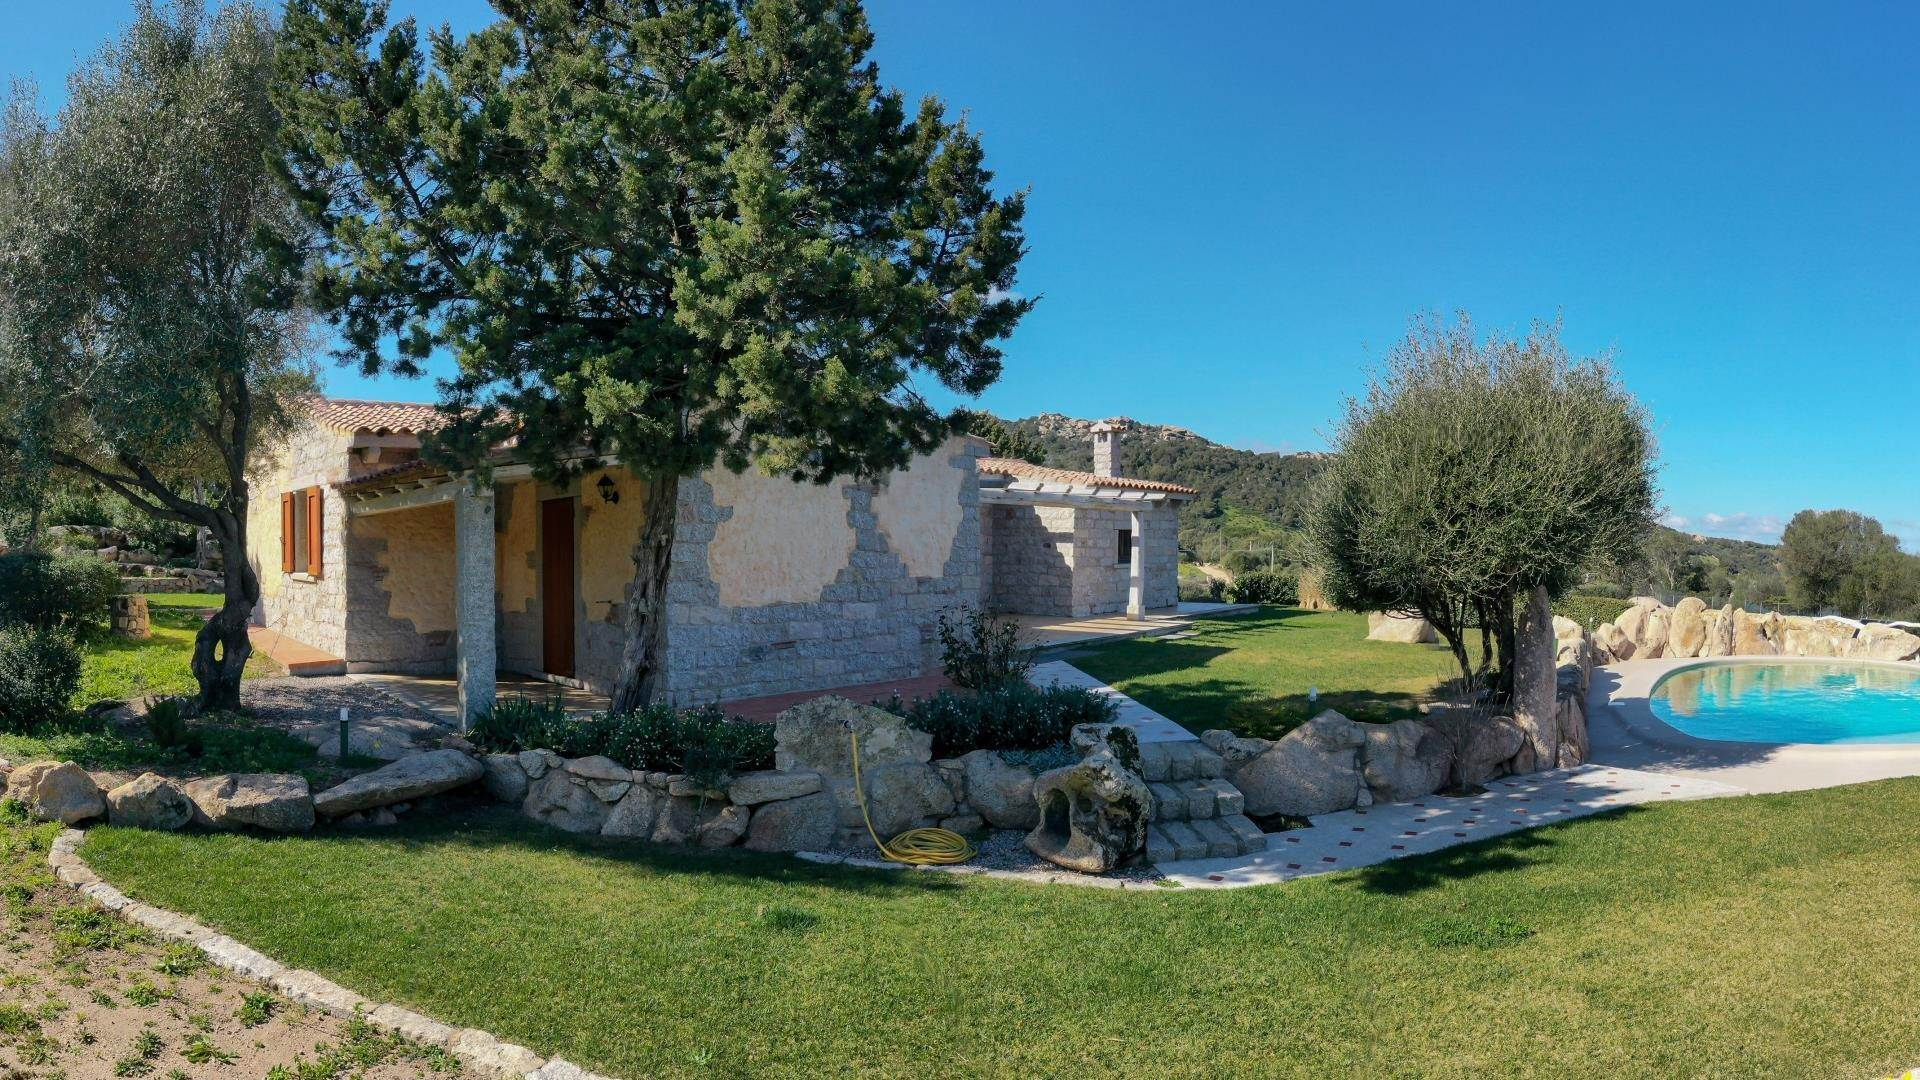 17. Villa/Townhouse for Rent at Country Villa with Pool for rent Costa Smeralda, Olbia Tempio,07021 Italy